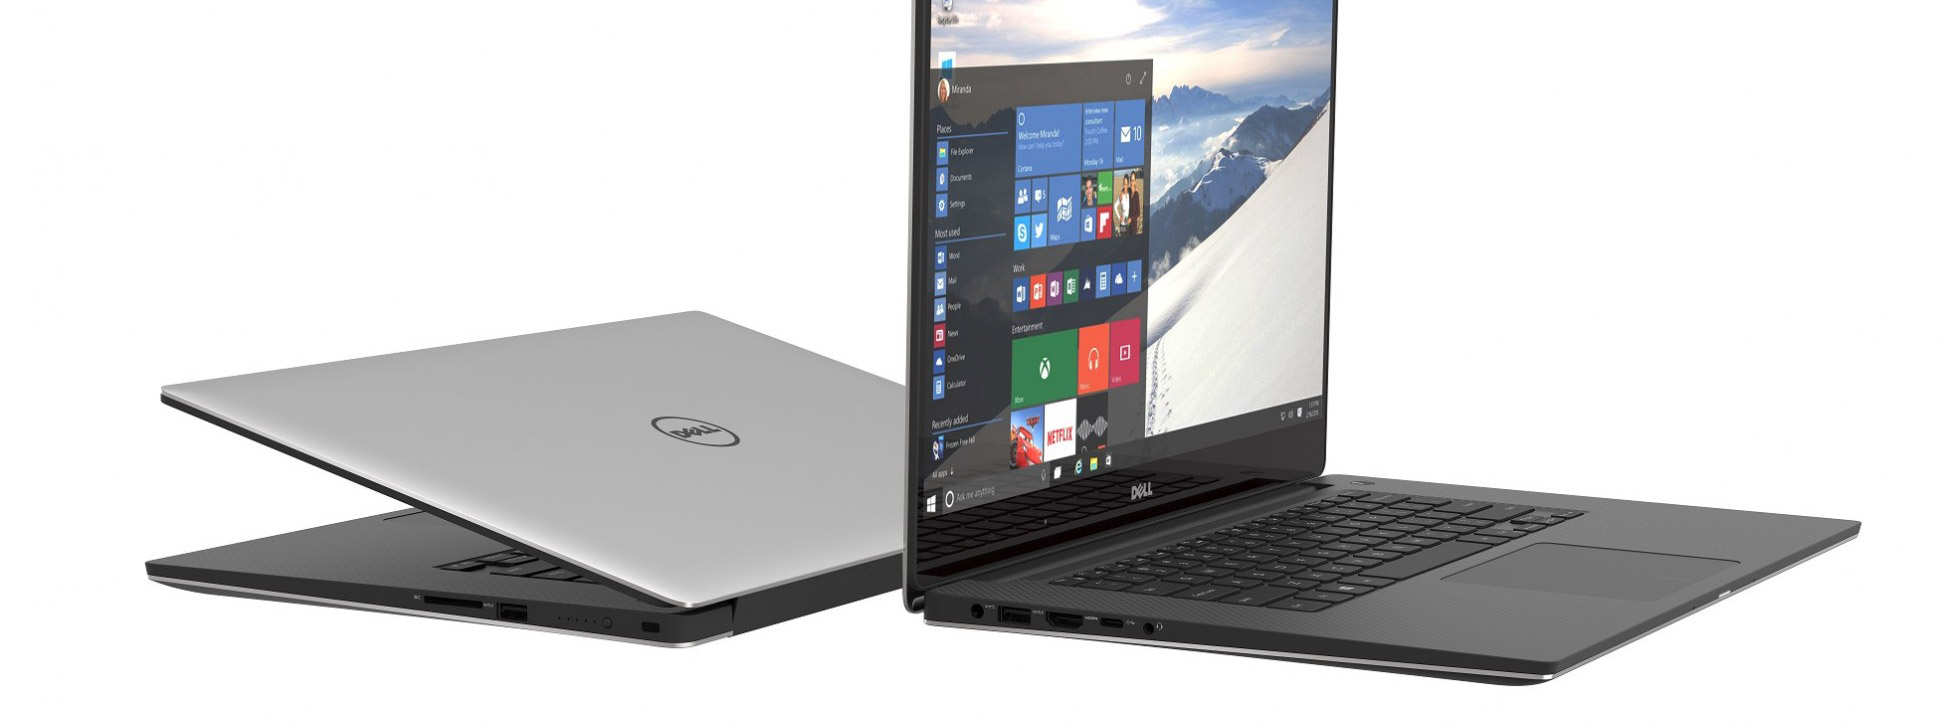 home_dell_xps_15.jpg